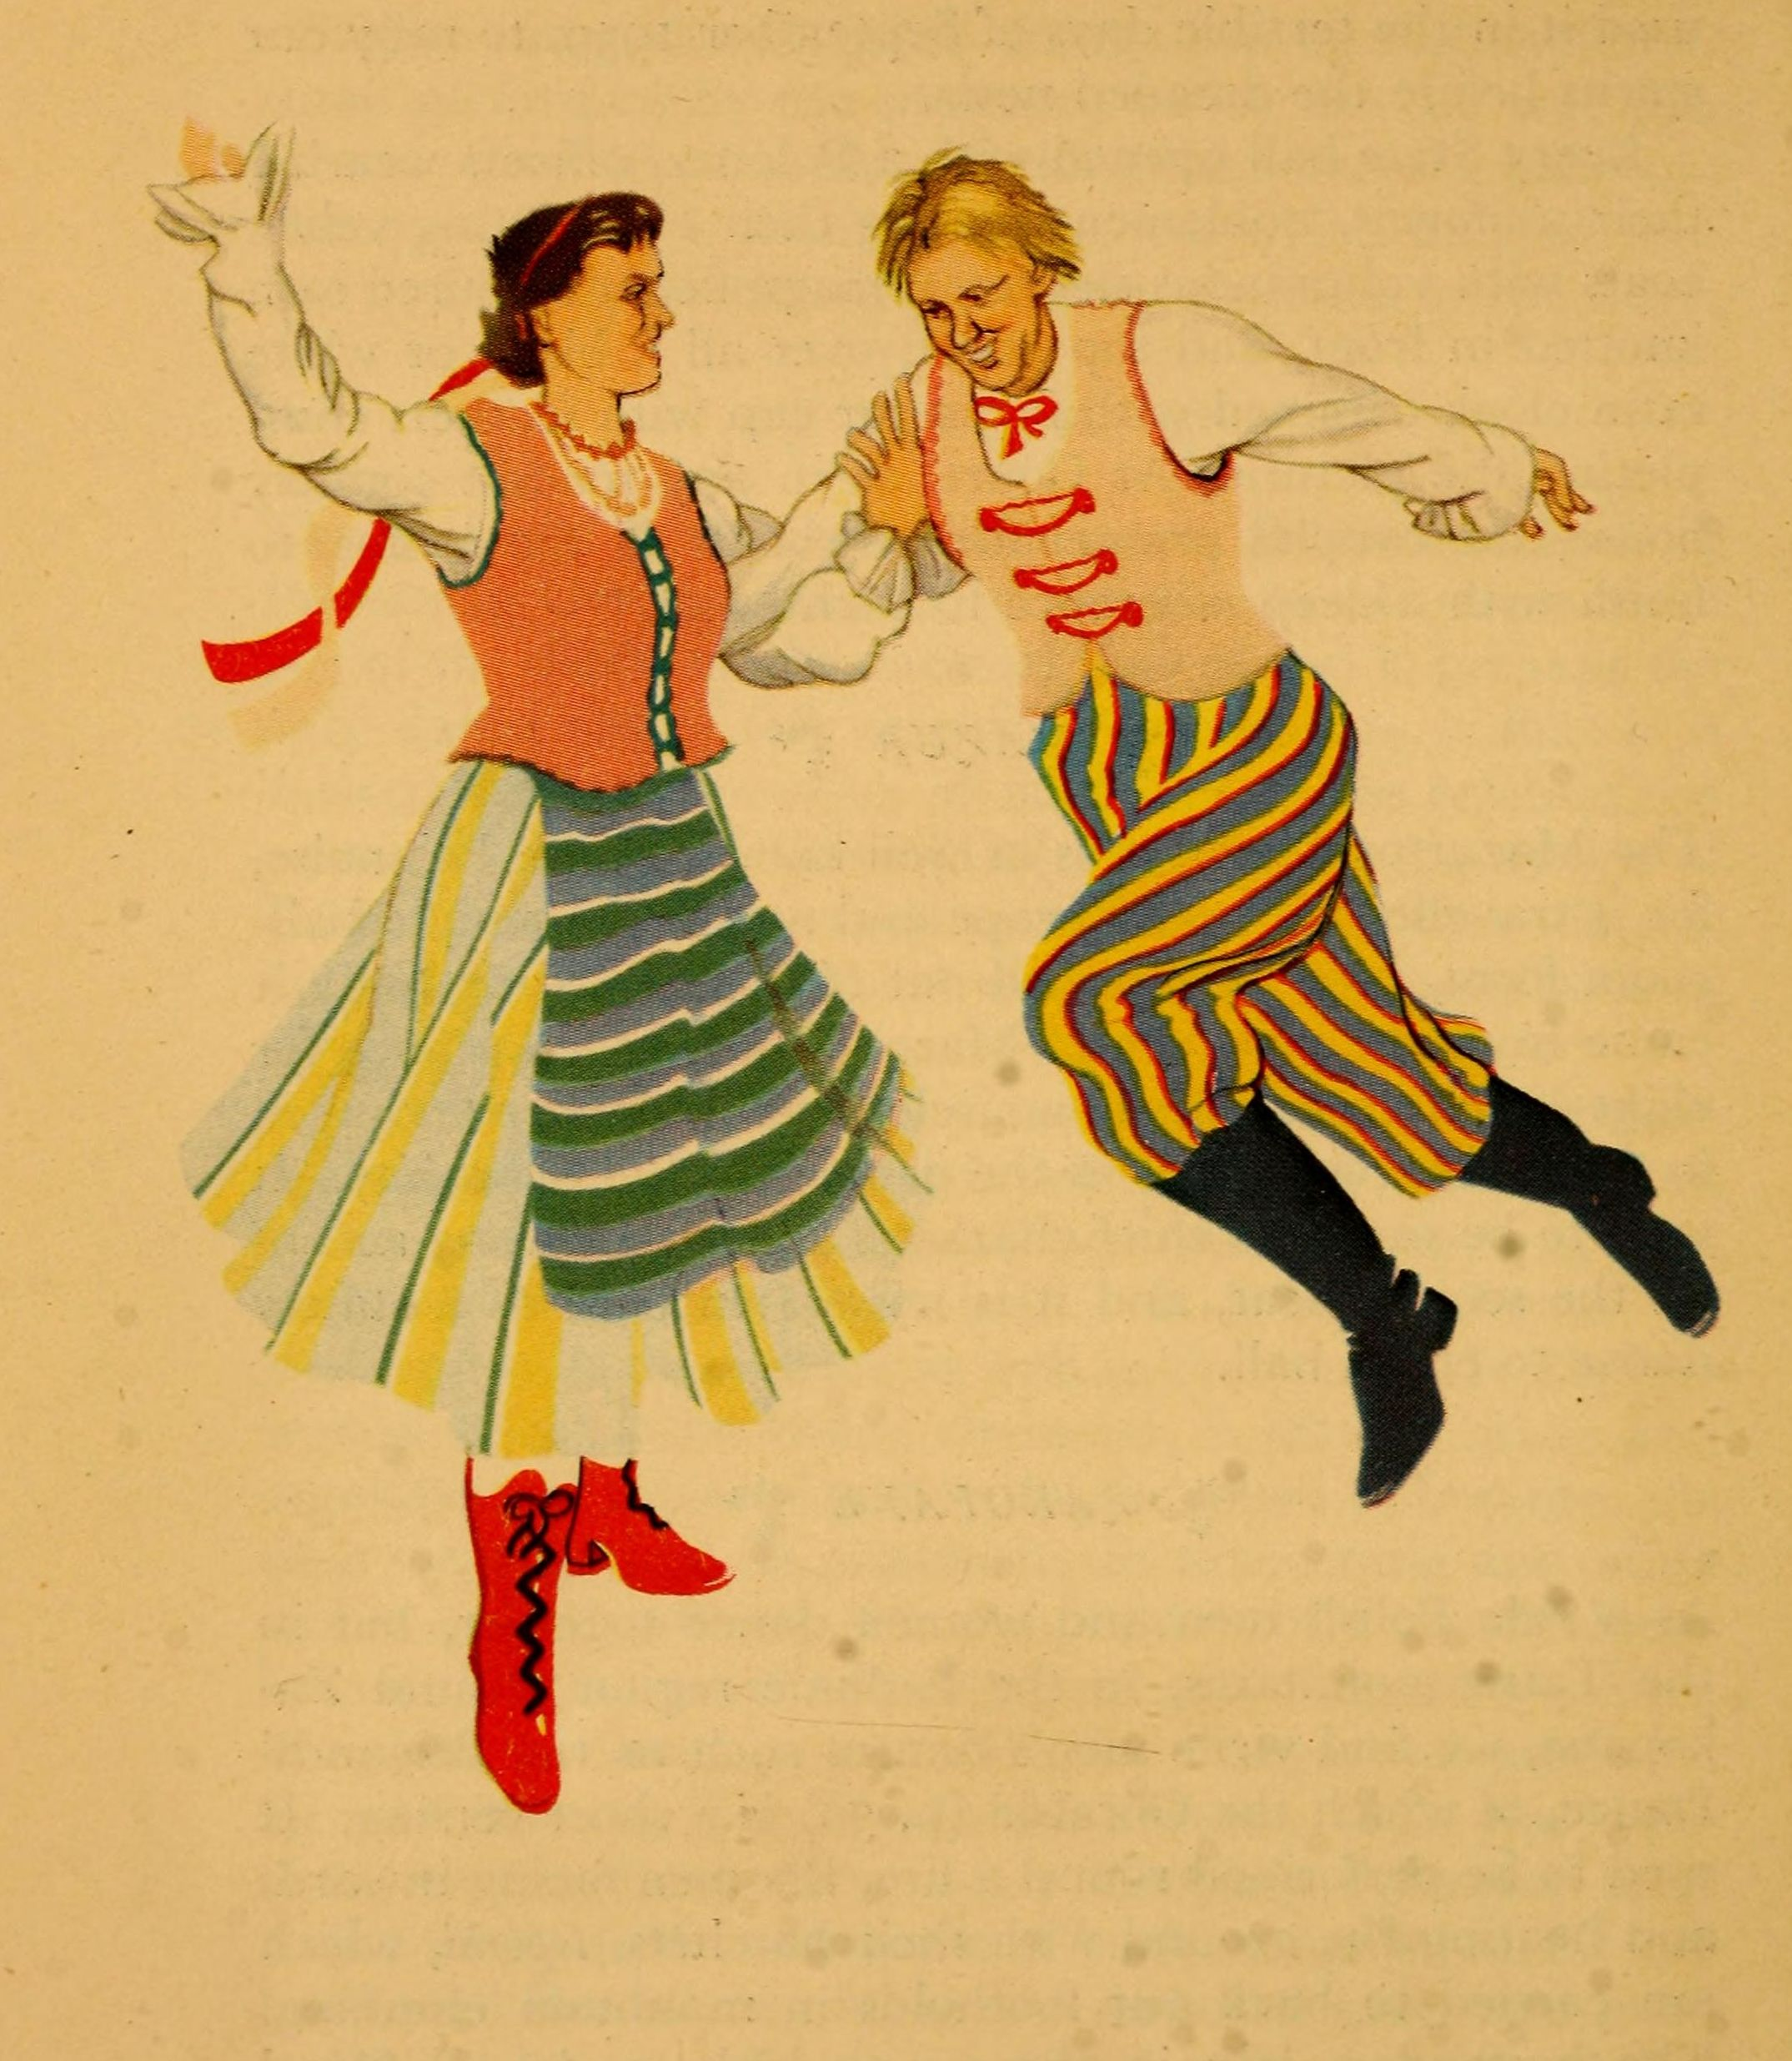 Polish Dancing! There are hundreds of public domain music